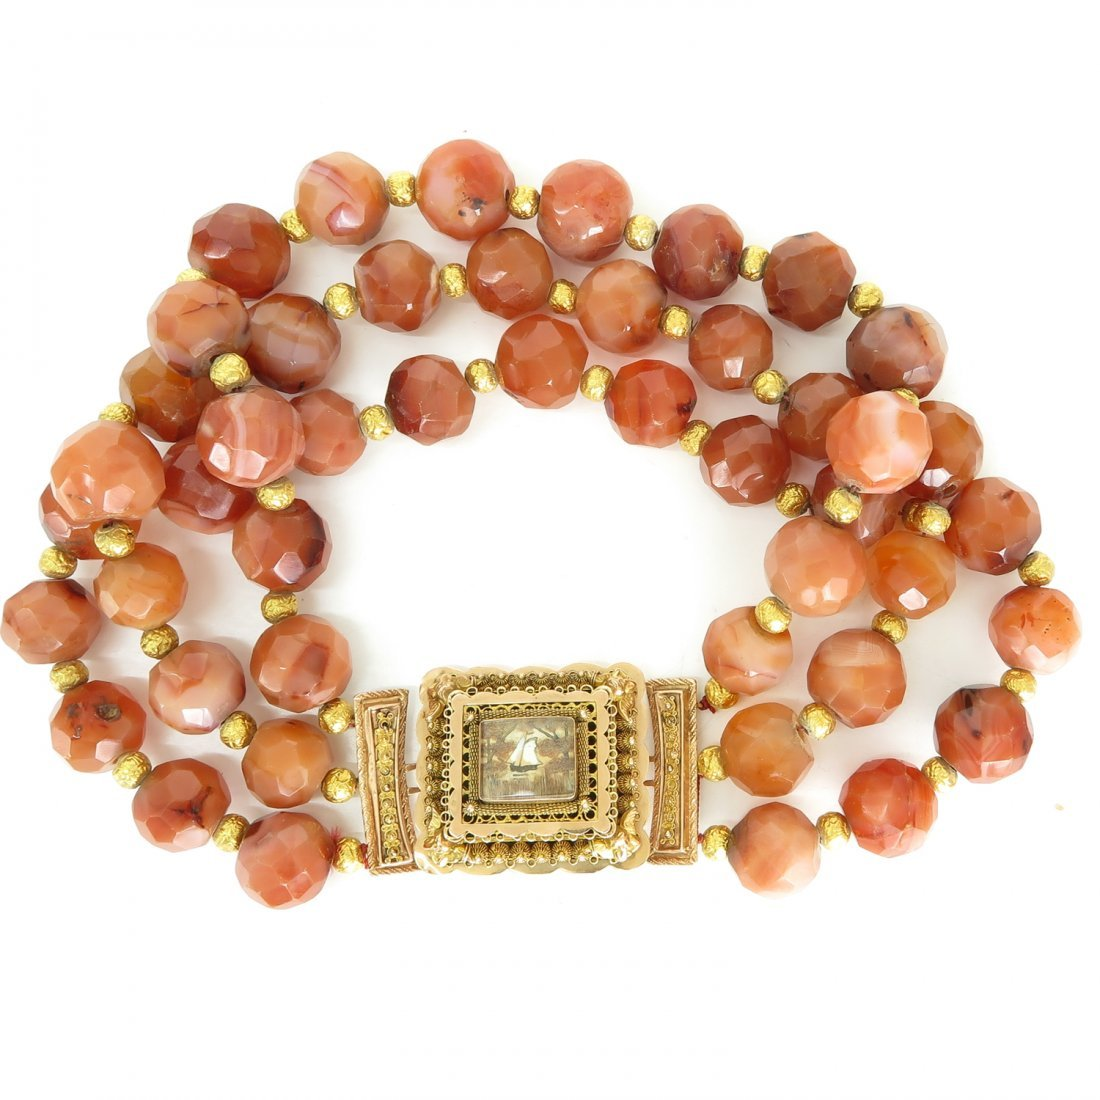 3 Strand Carnelian Necklace on 14KG Volendam Clasp